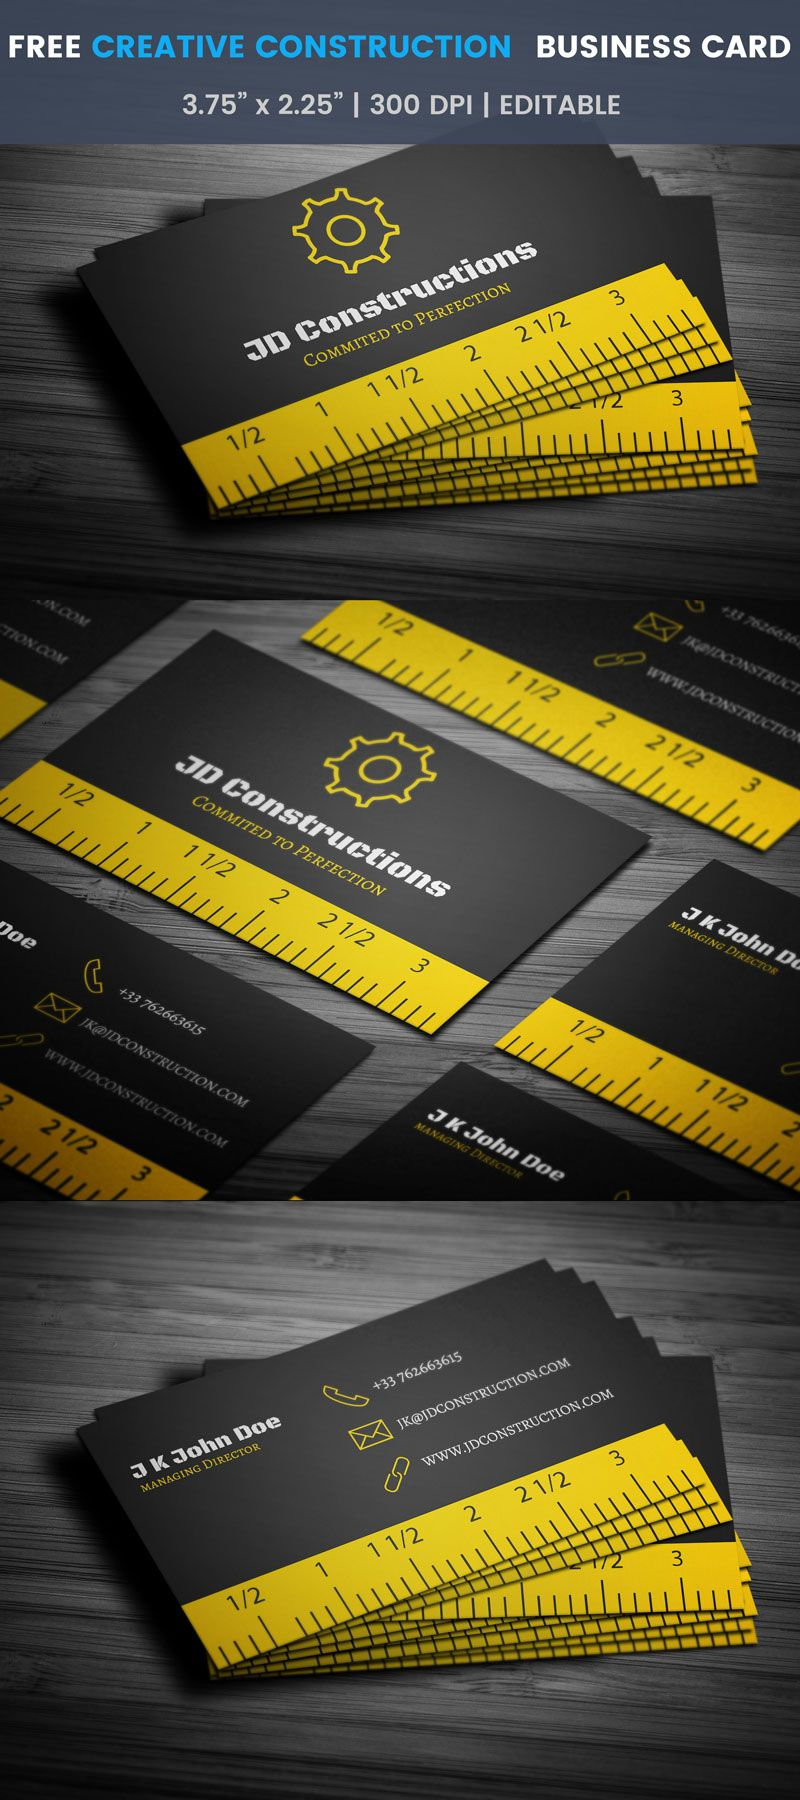 Creative construction business card full preview free business creative construction business card full preview friedricerecipe Images